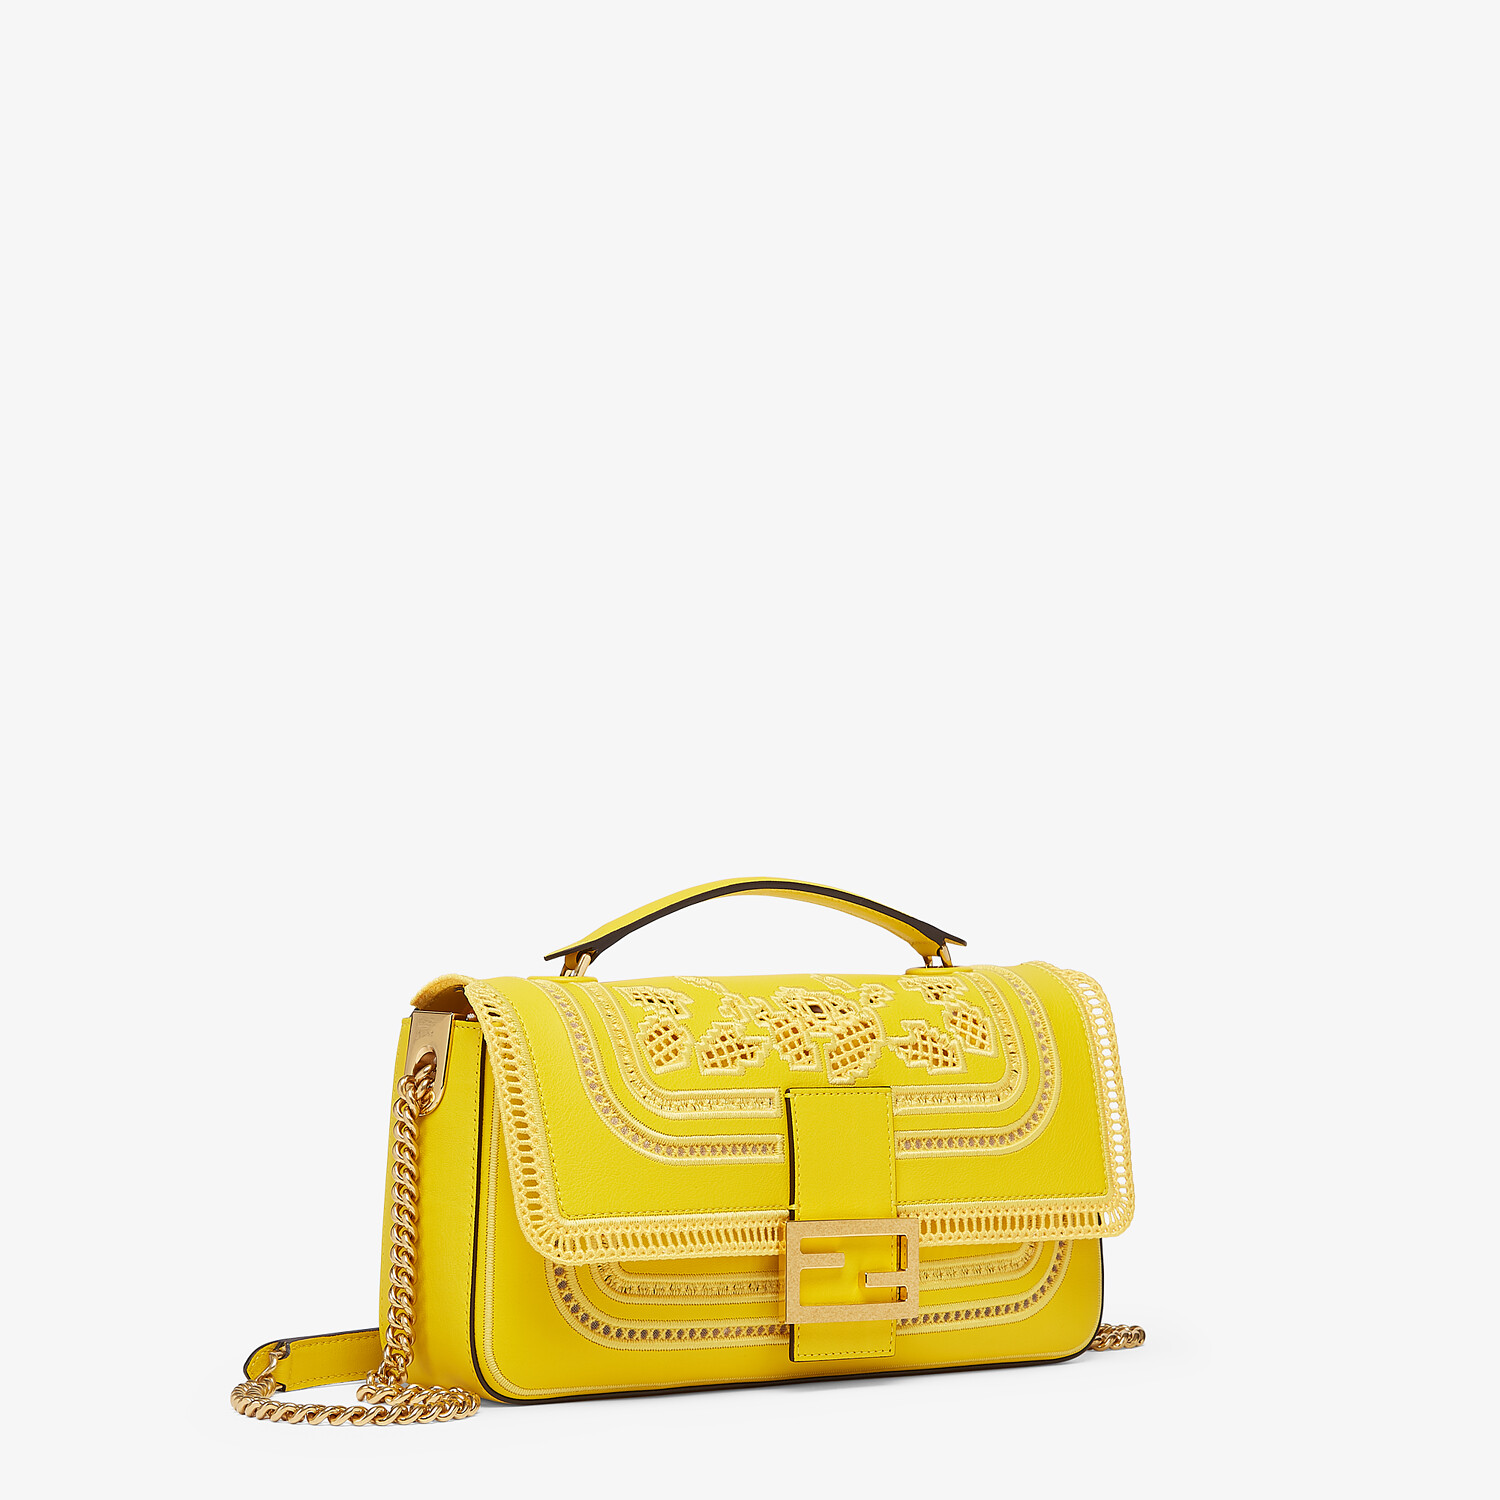 FENDI BAGUETTE CHAIN - Embroidered yellow leather bag - view 2 detail